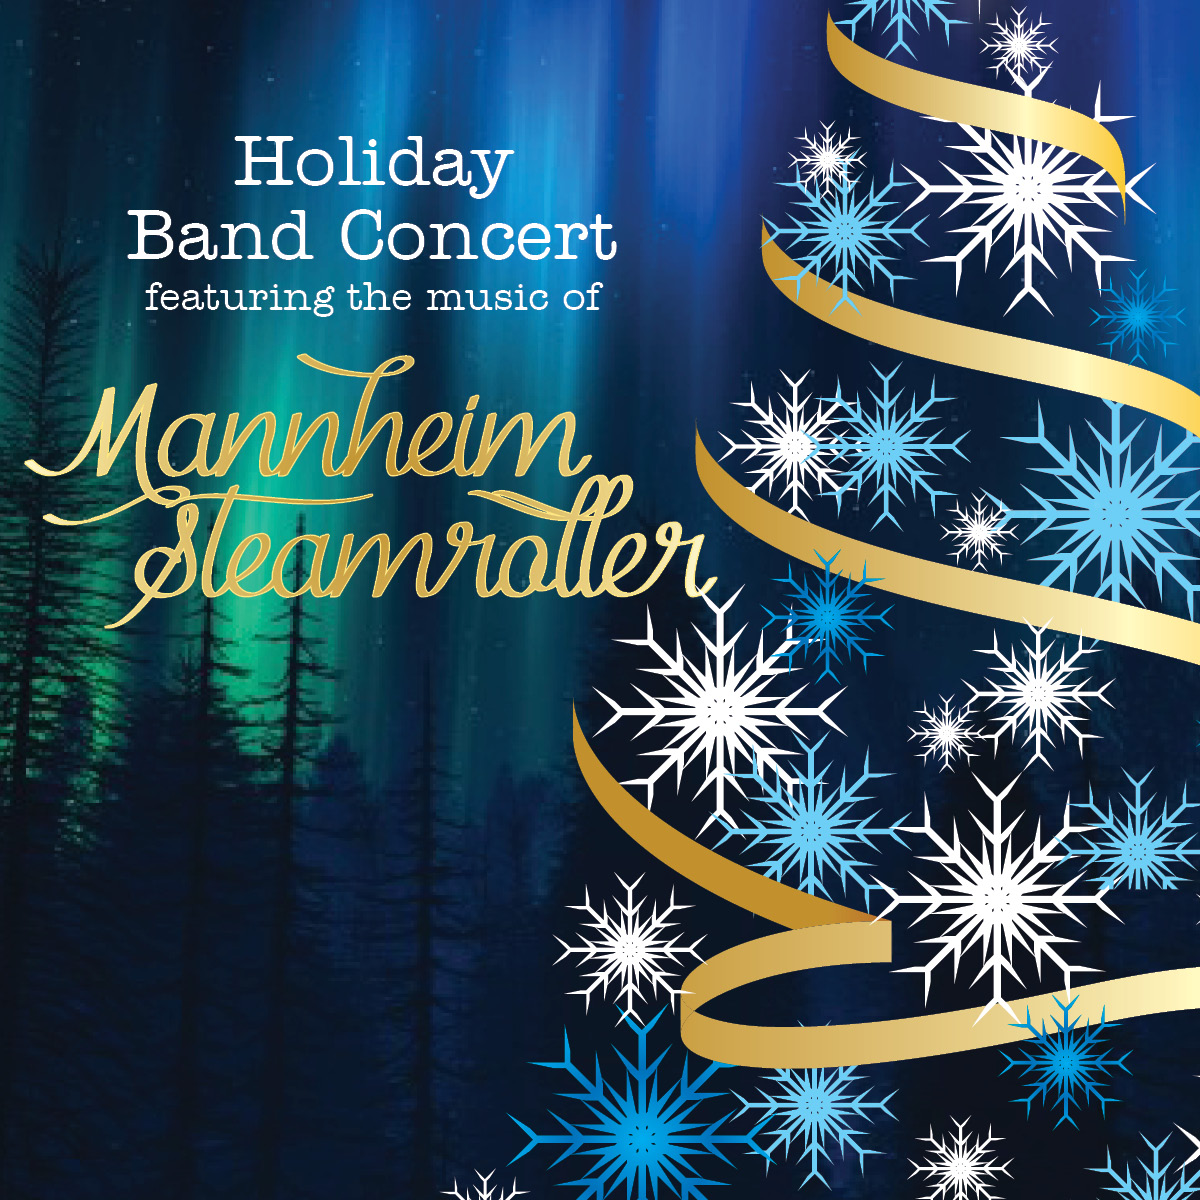 M State's winter band concert features the music of Mannheim Steamroller.